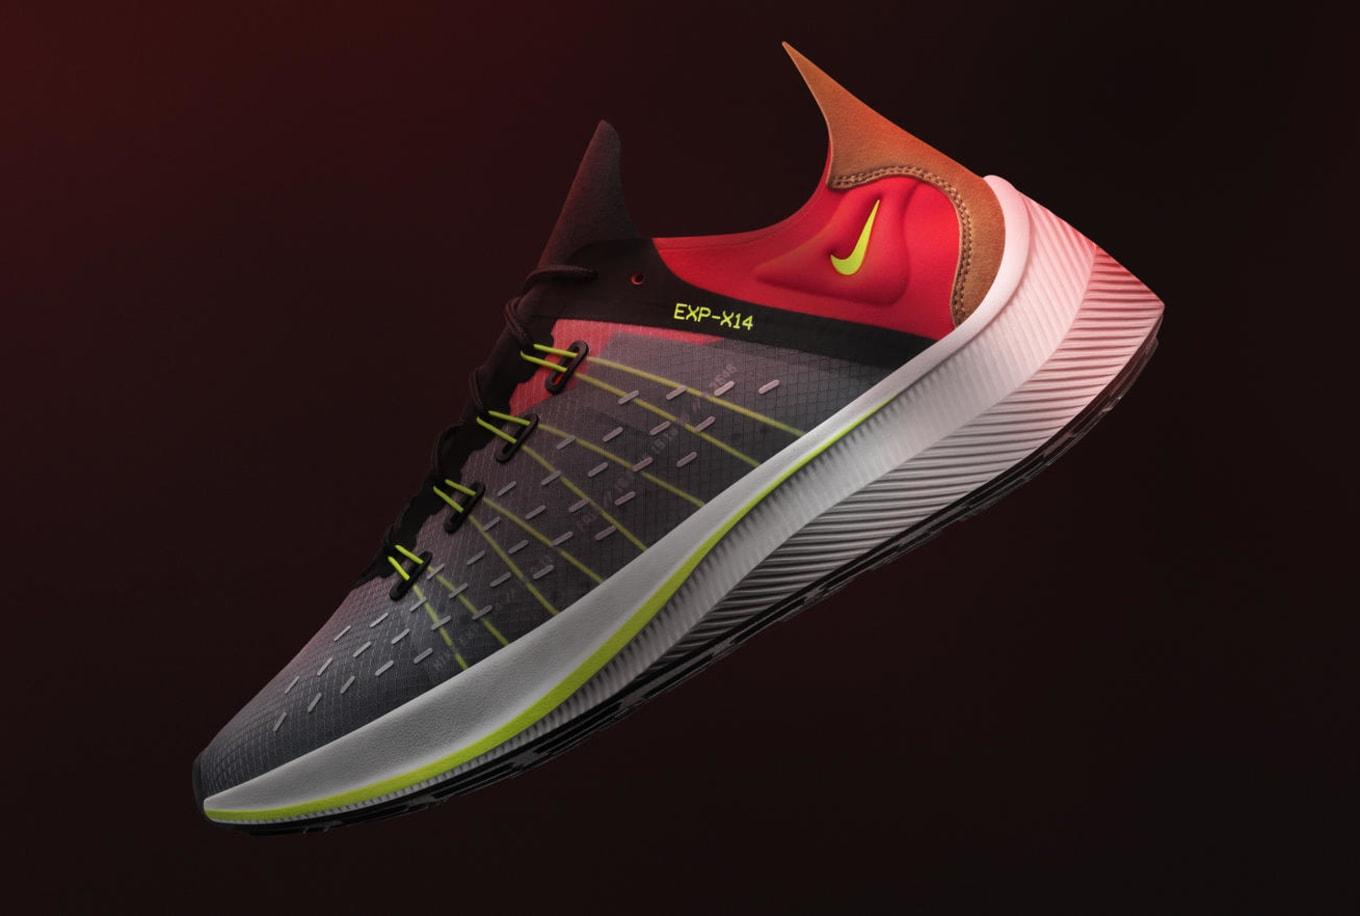 wholesale dealer 3df75 781bb Nike Debuts Its Latest Lifestyle Runner. Introducing the EXP-X14.